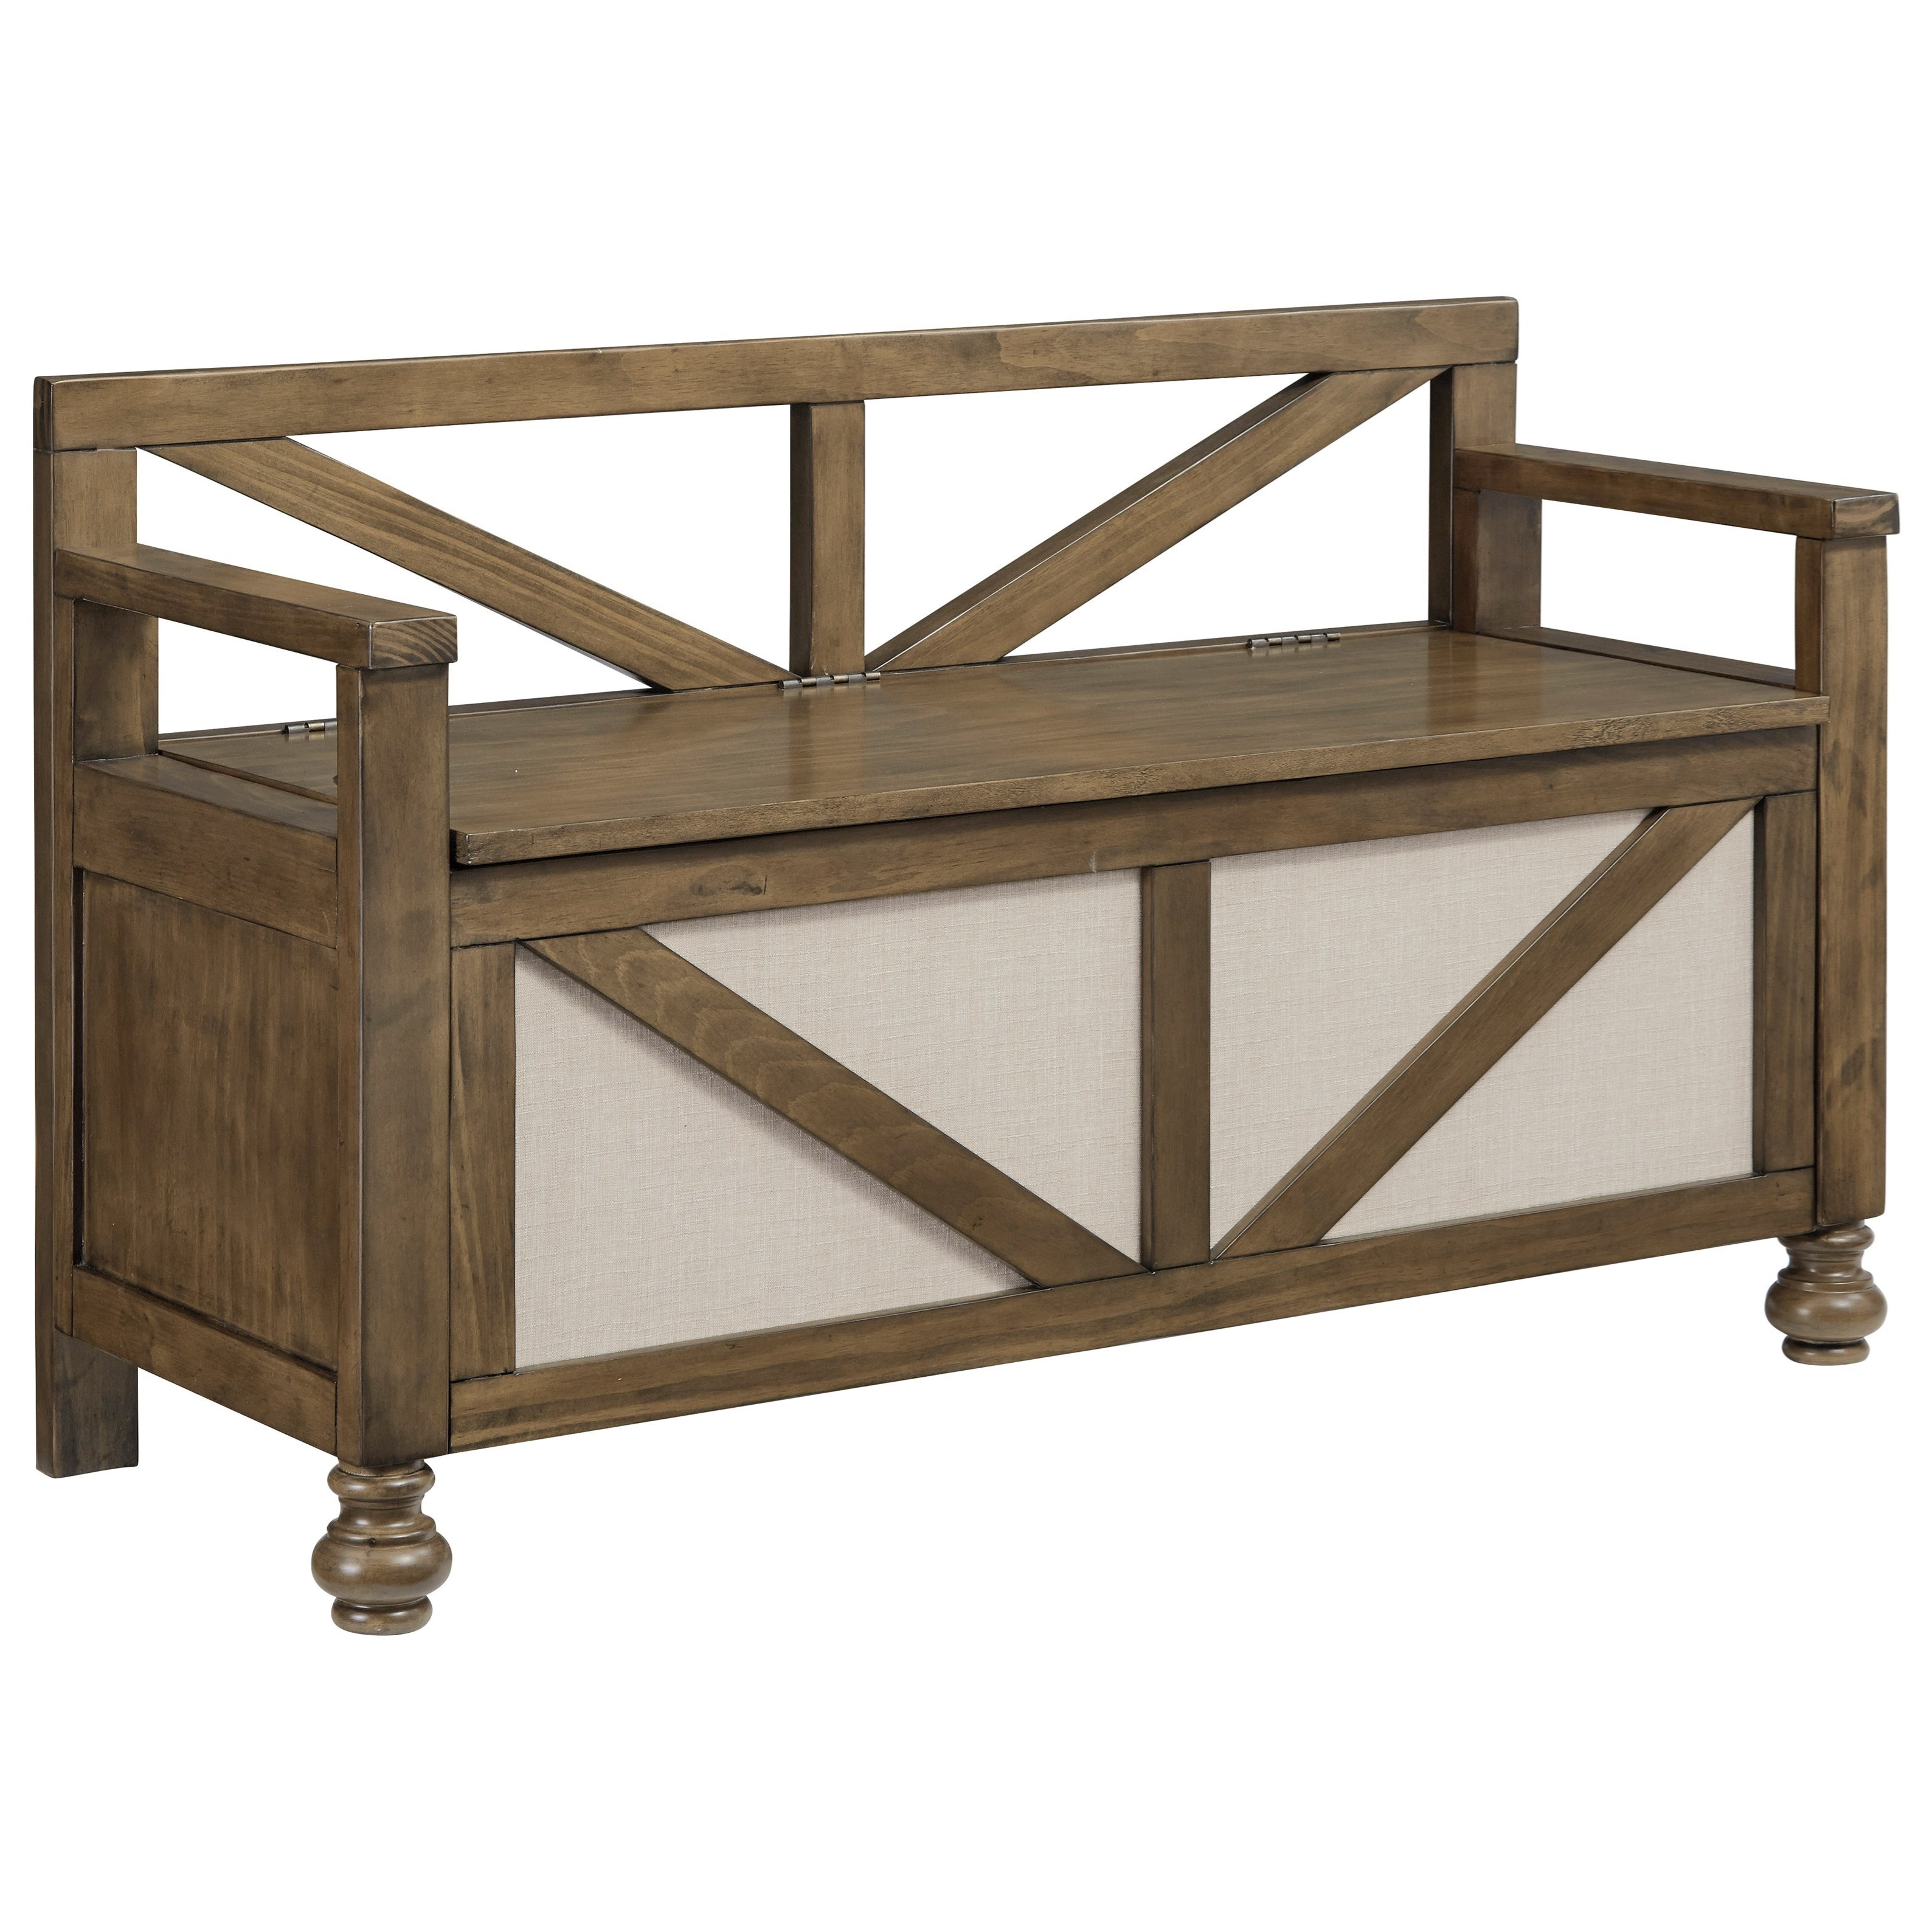 Brickwell Storage Bench by Signature Design by Ashley at Zak's Warehouse Clearance Center